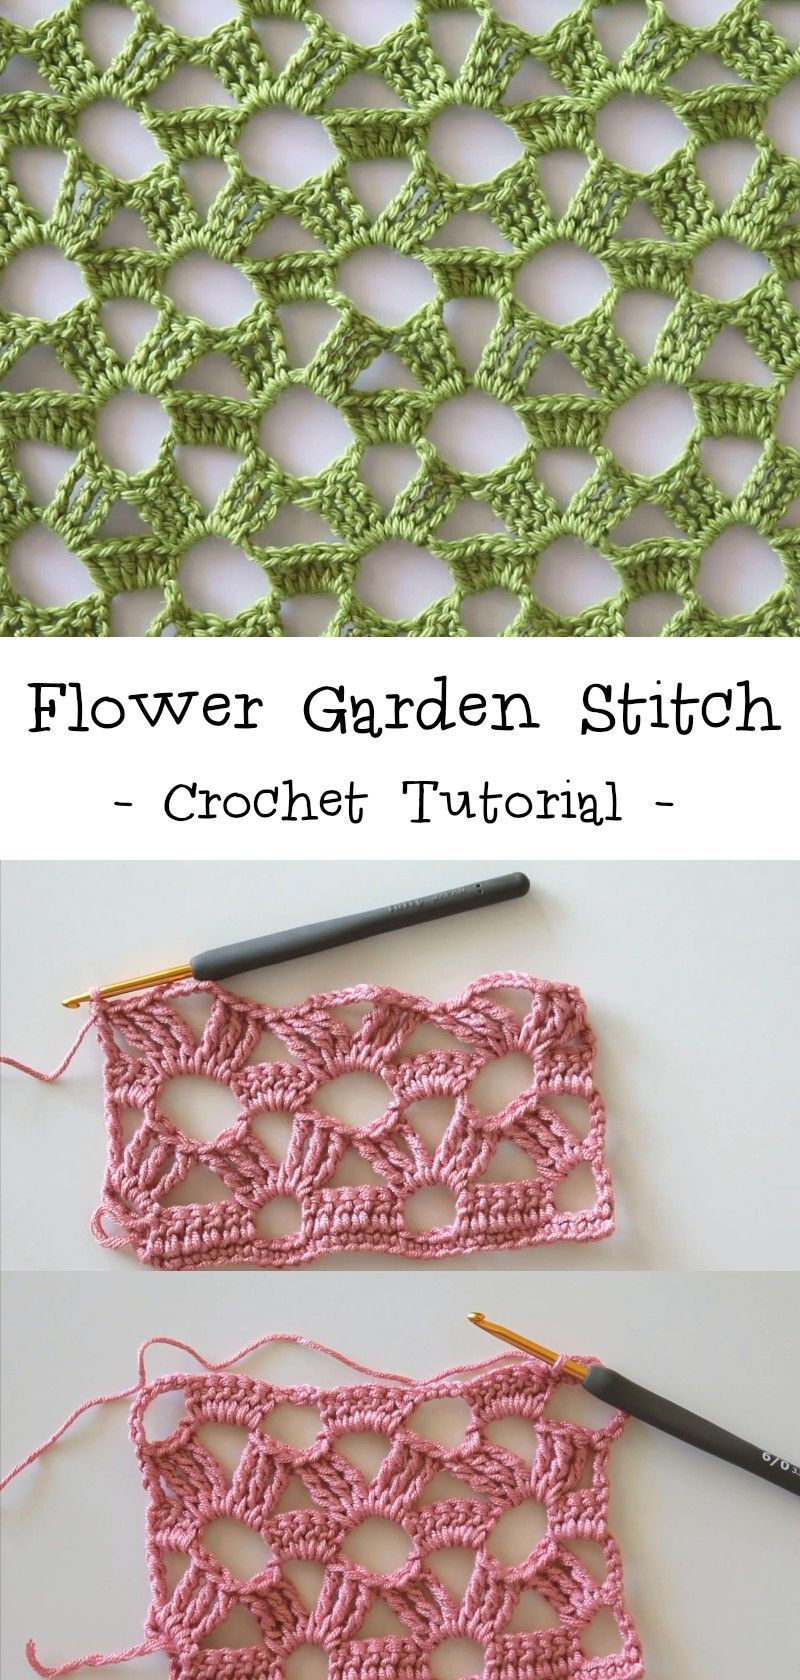 Flower Garden Stitch Crochet Tutorial Flower Garden Stitch Crochet Tutorial Crochet Techniques crochet techniques and tips